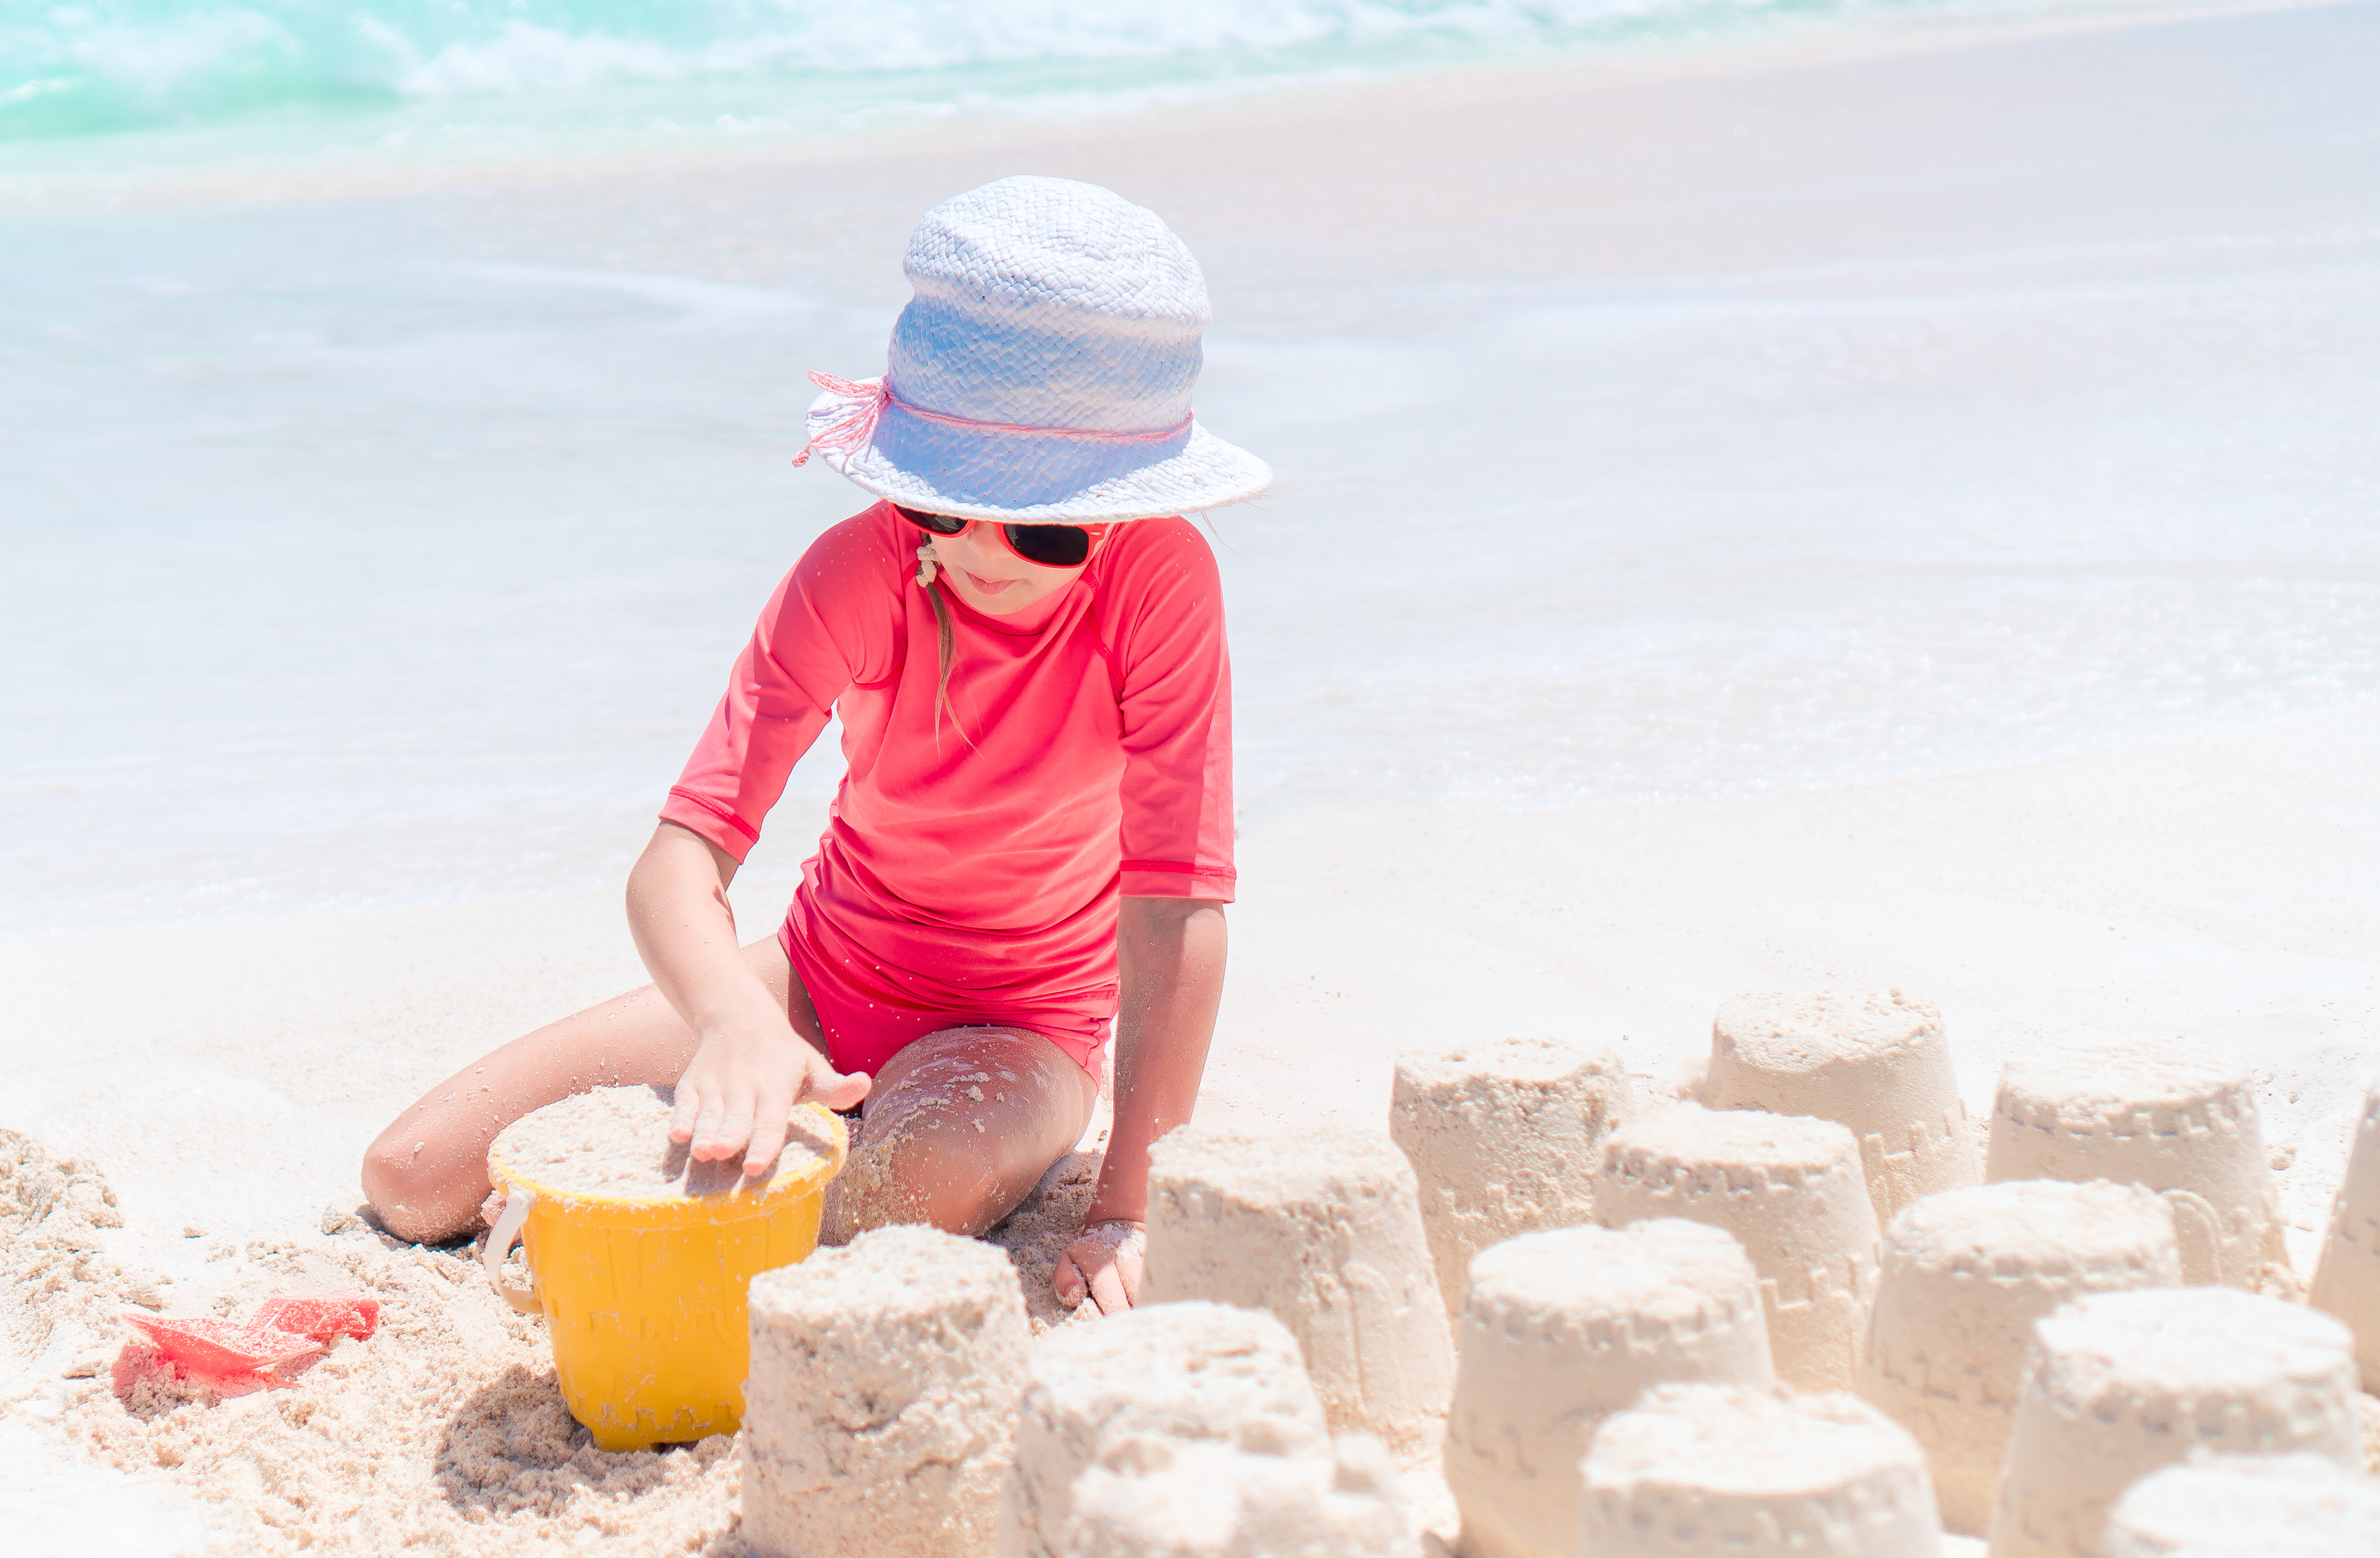 Adorable little girl in hat and sun glasses making sand castles in the white sands of Siesta Key Beach